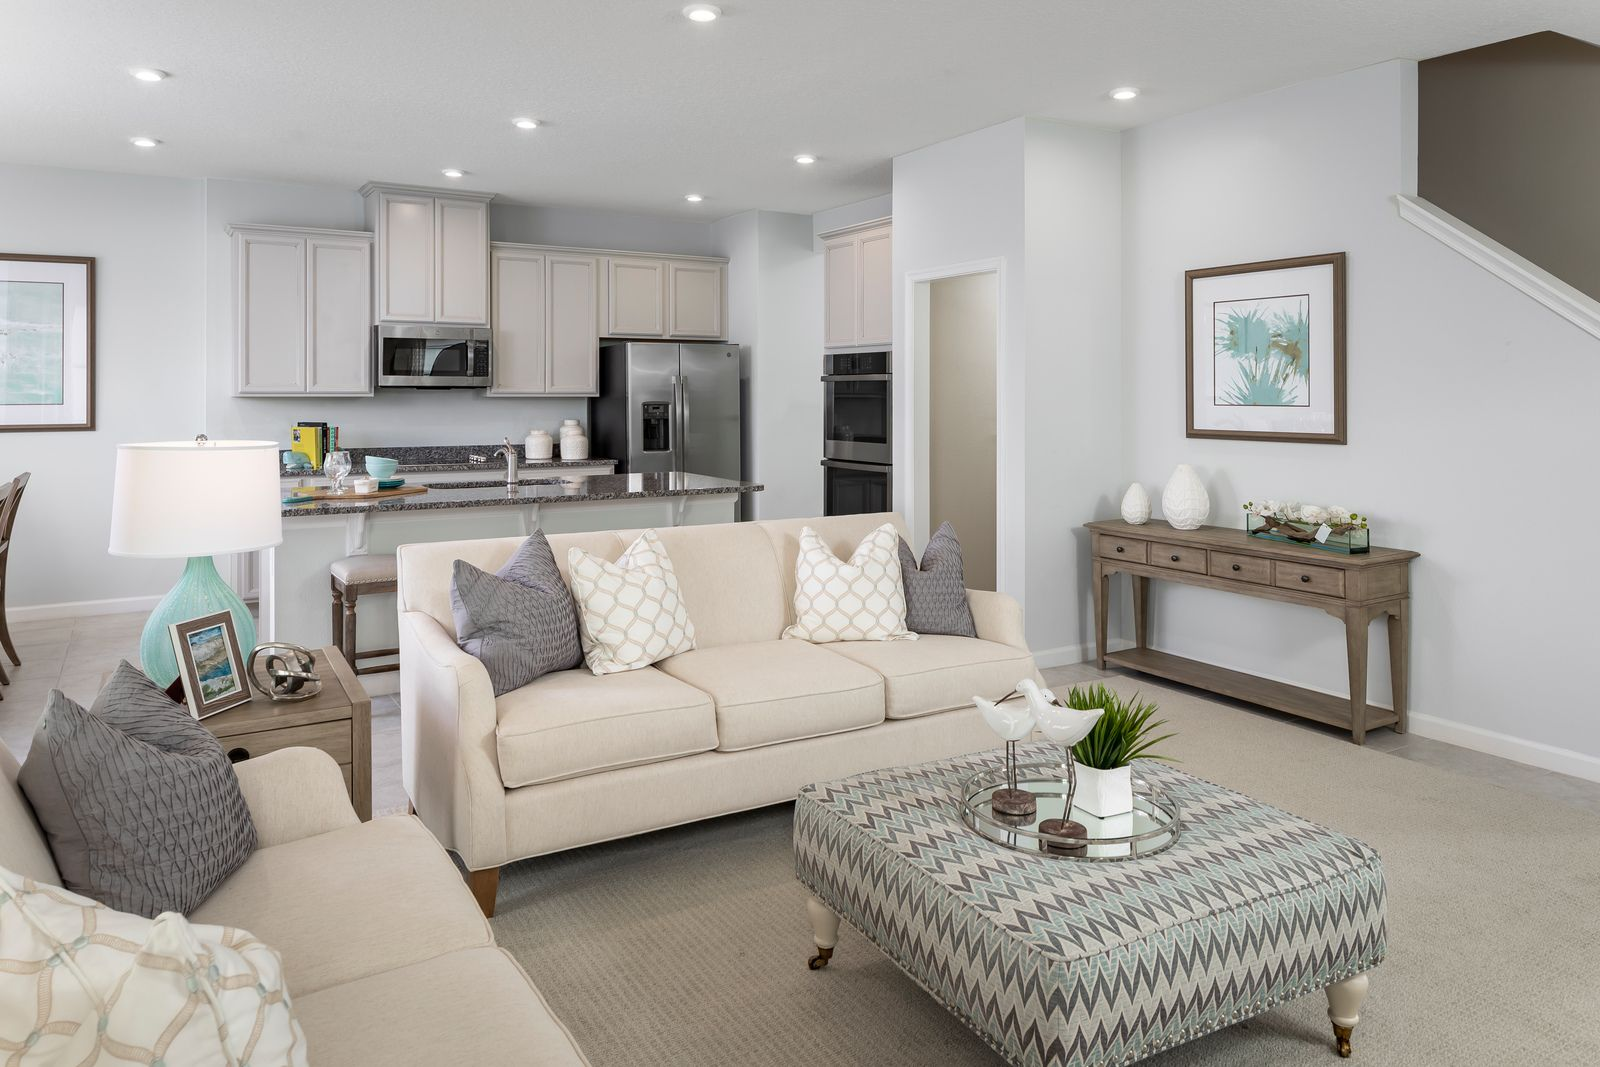 Living Area featured in the Hillcrest By Ryan Homes in Orlando, FL